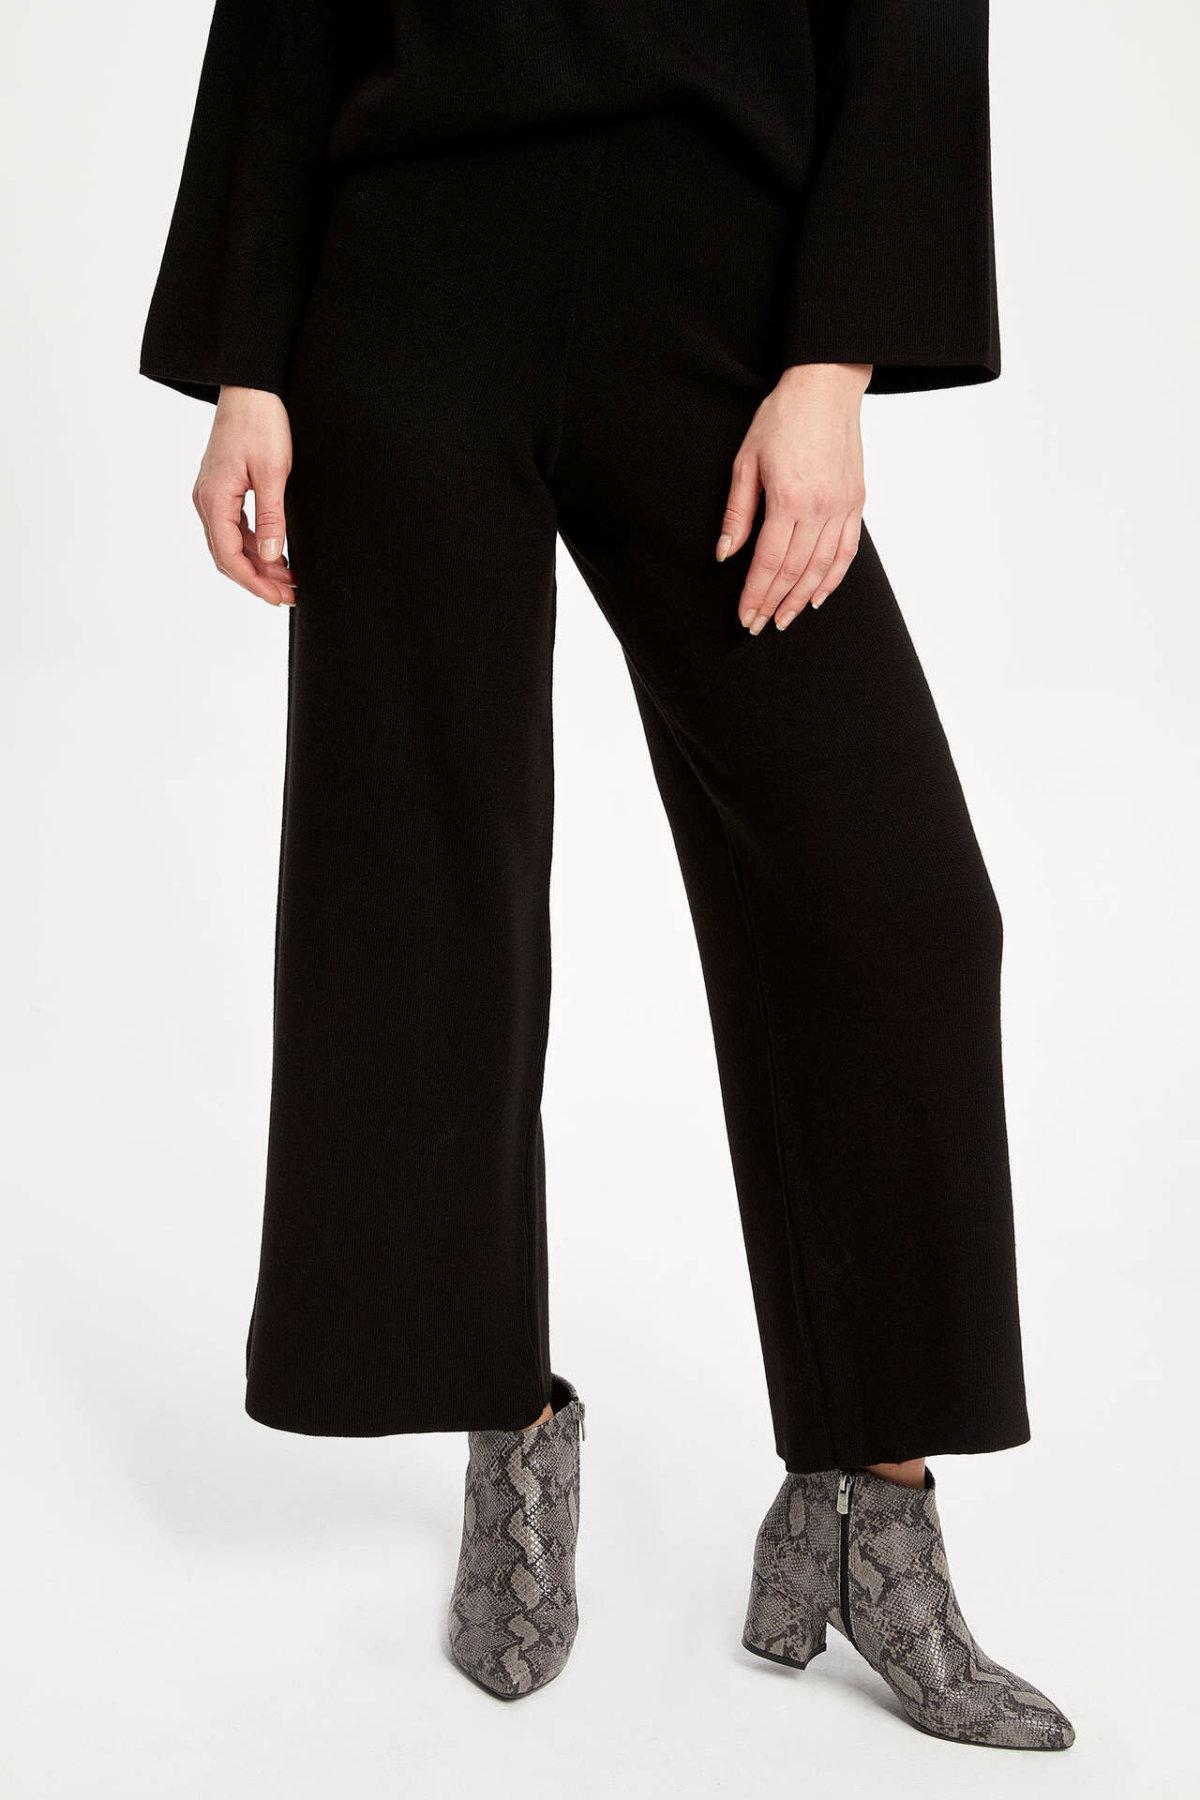 DeFacto Women's Fashion Formal Black Loose Trousers For Ladies Casual Pants Straight Cotton Long Pants Female - K9816AZ18WN